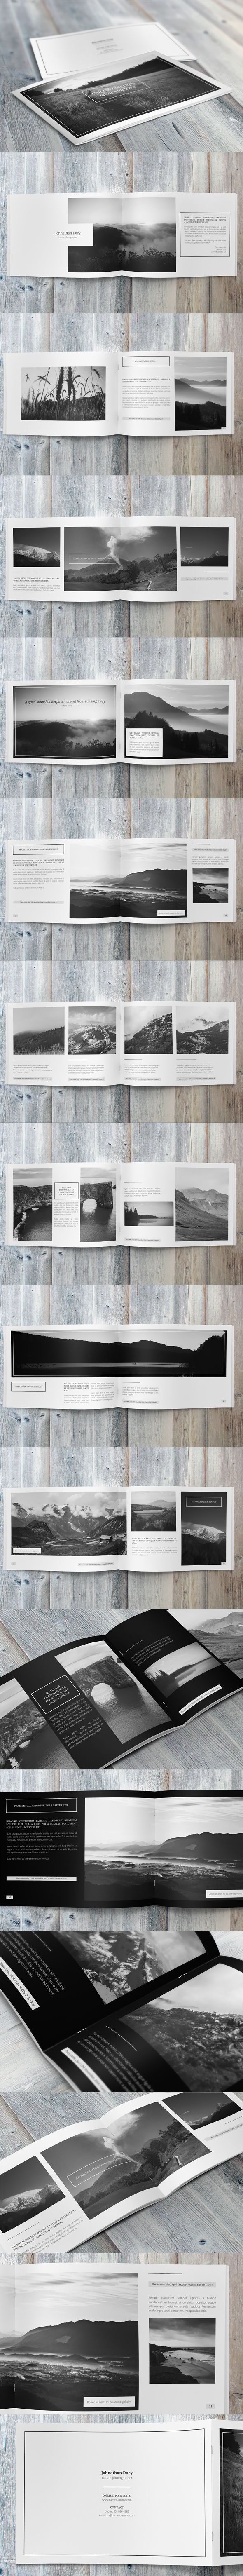 Minimalfolio Photography Portfolio A4 Brochure on Behance